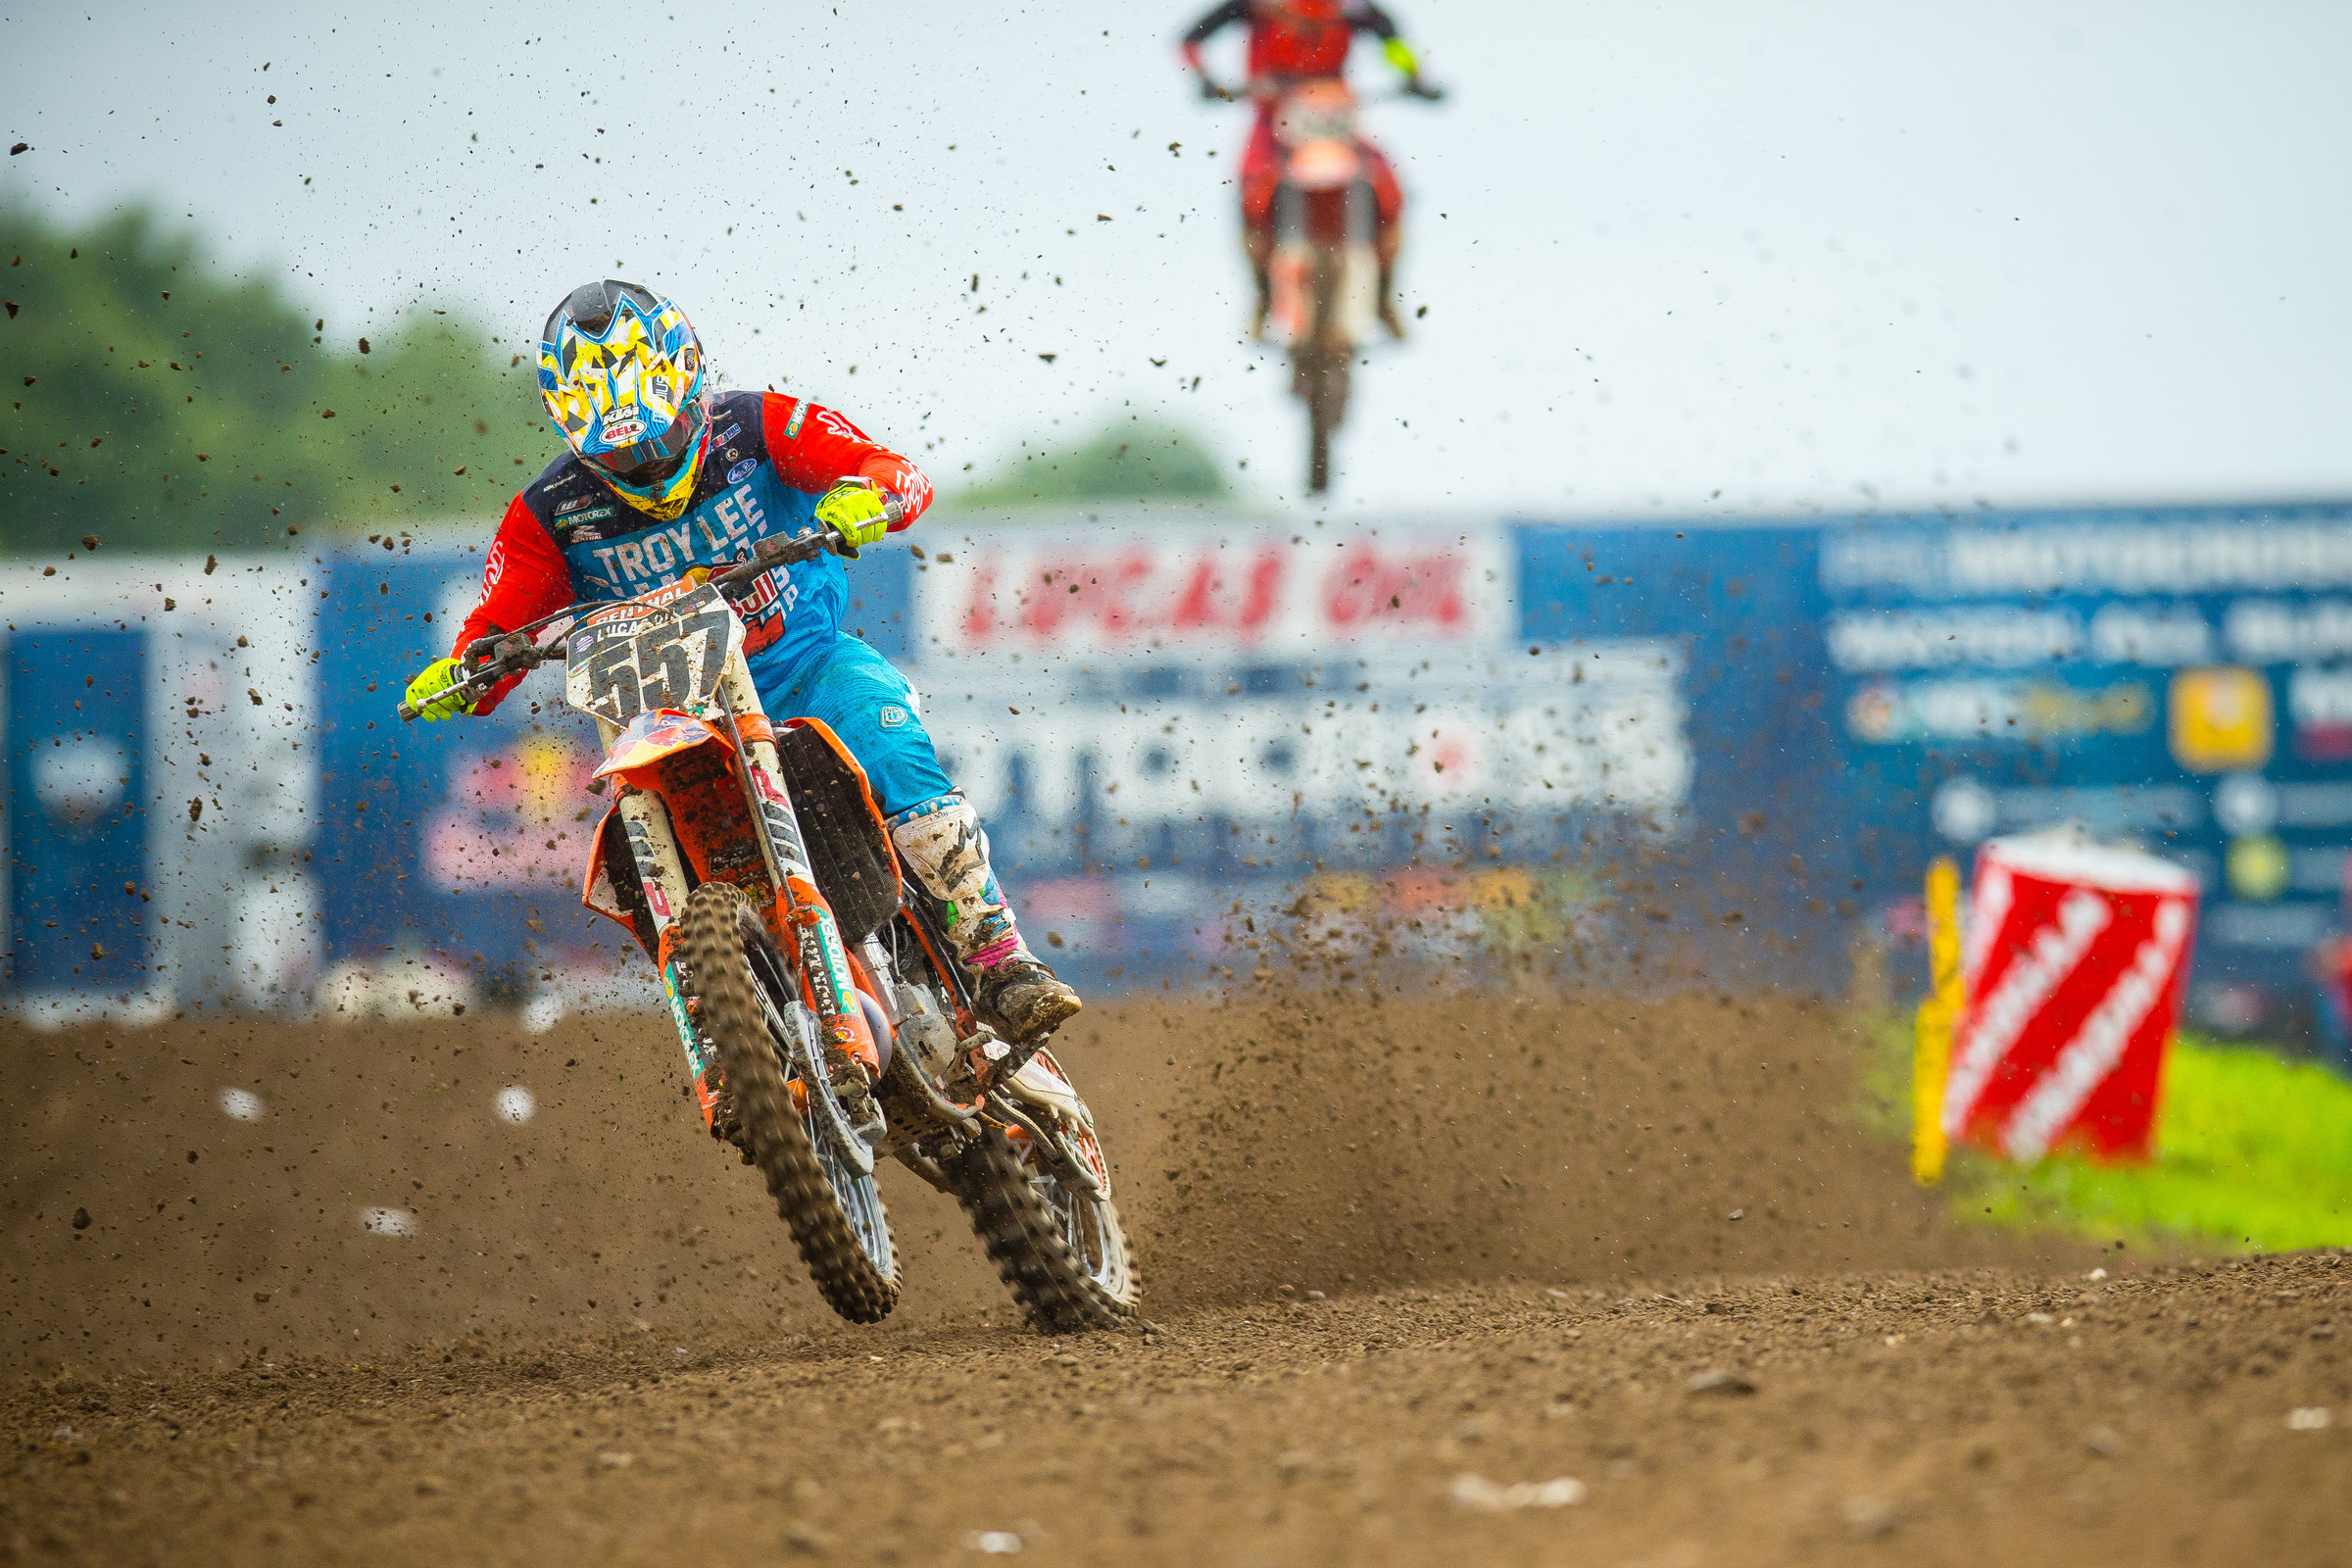 Russell went 6-30 for 13th on the day after crashing into Barcia in the second moto.